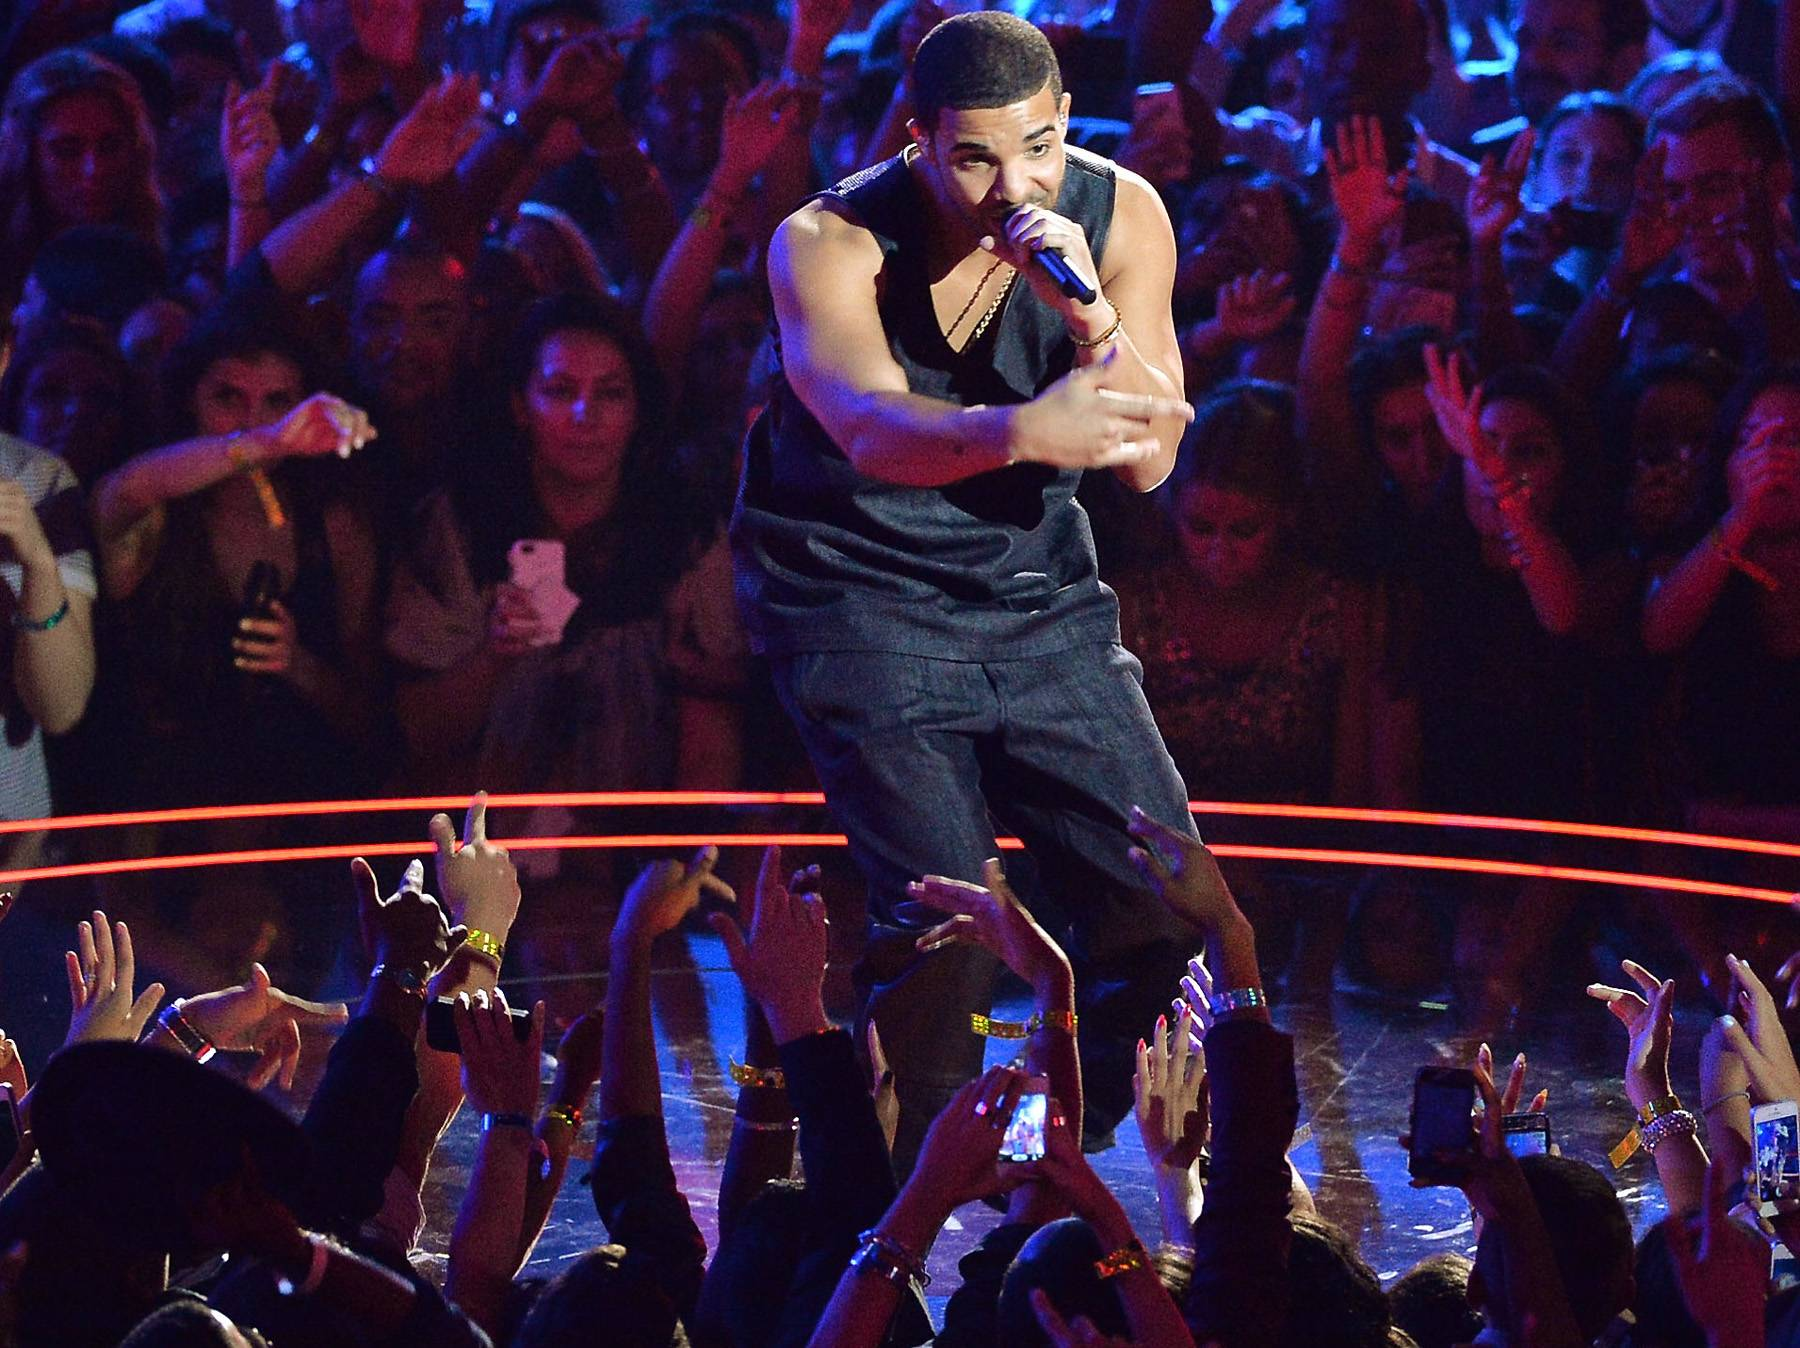 """Best Hip Hop Song of The Year: Drake - """"Started From The Bottom"""" - Drake's bouncy track speaks to the dreamers, up-all-nighters and hustlers who are hell-bent on making it to the top.(Photo: Rick Diamond/Getty Images)"""